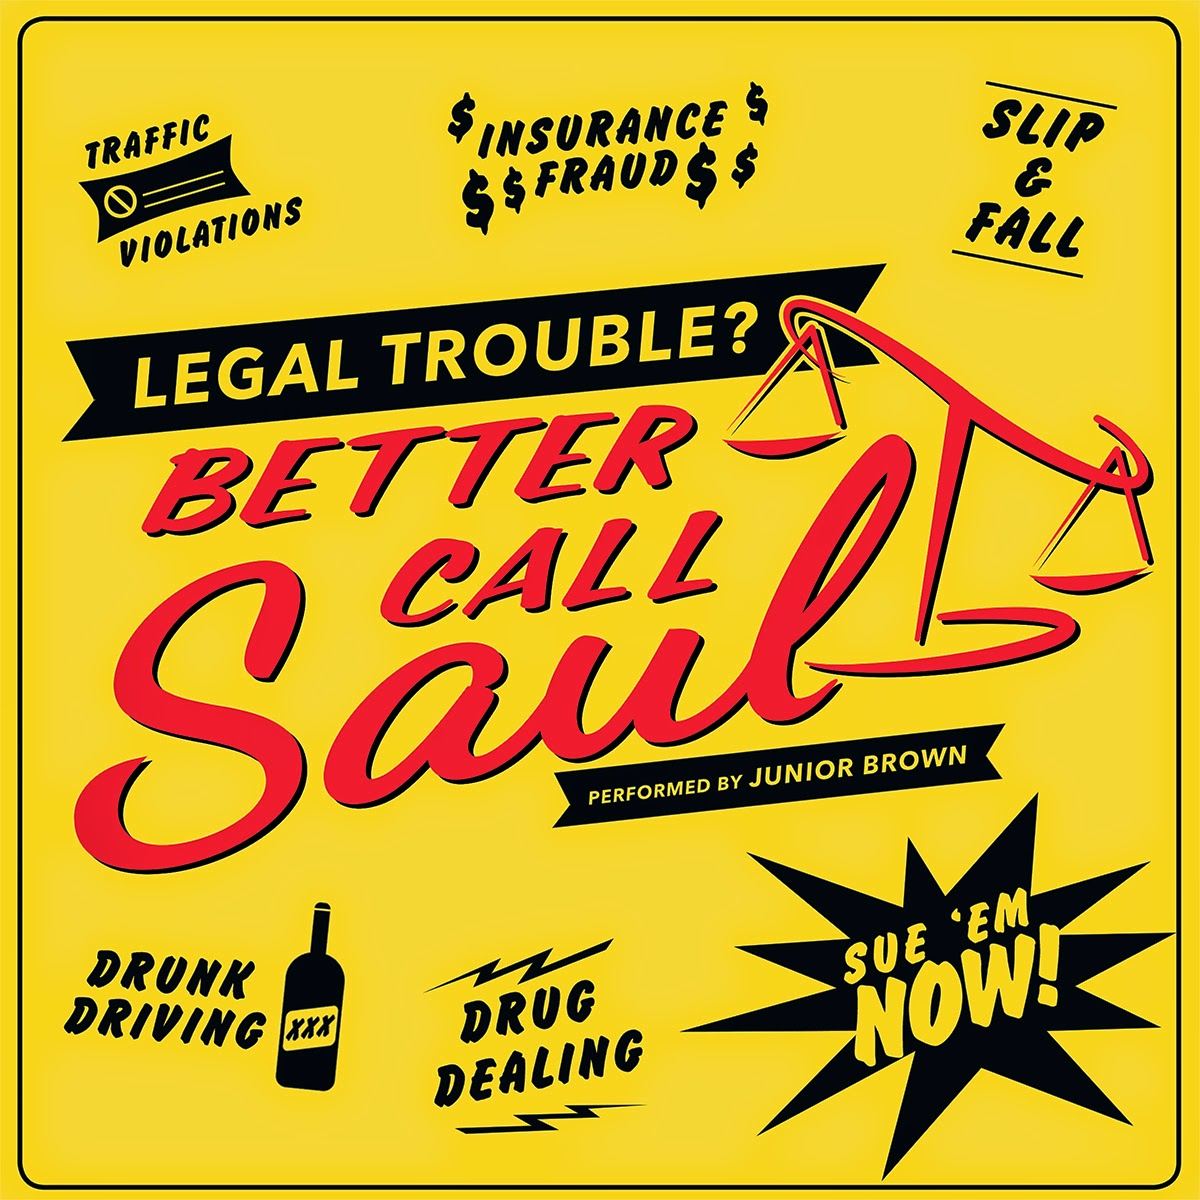 "Record Store Day 2015 Exclusive Better Call Saul Theme 7"" Single Vinyl Record by Junior Brown & SPACELAB9"